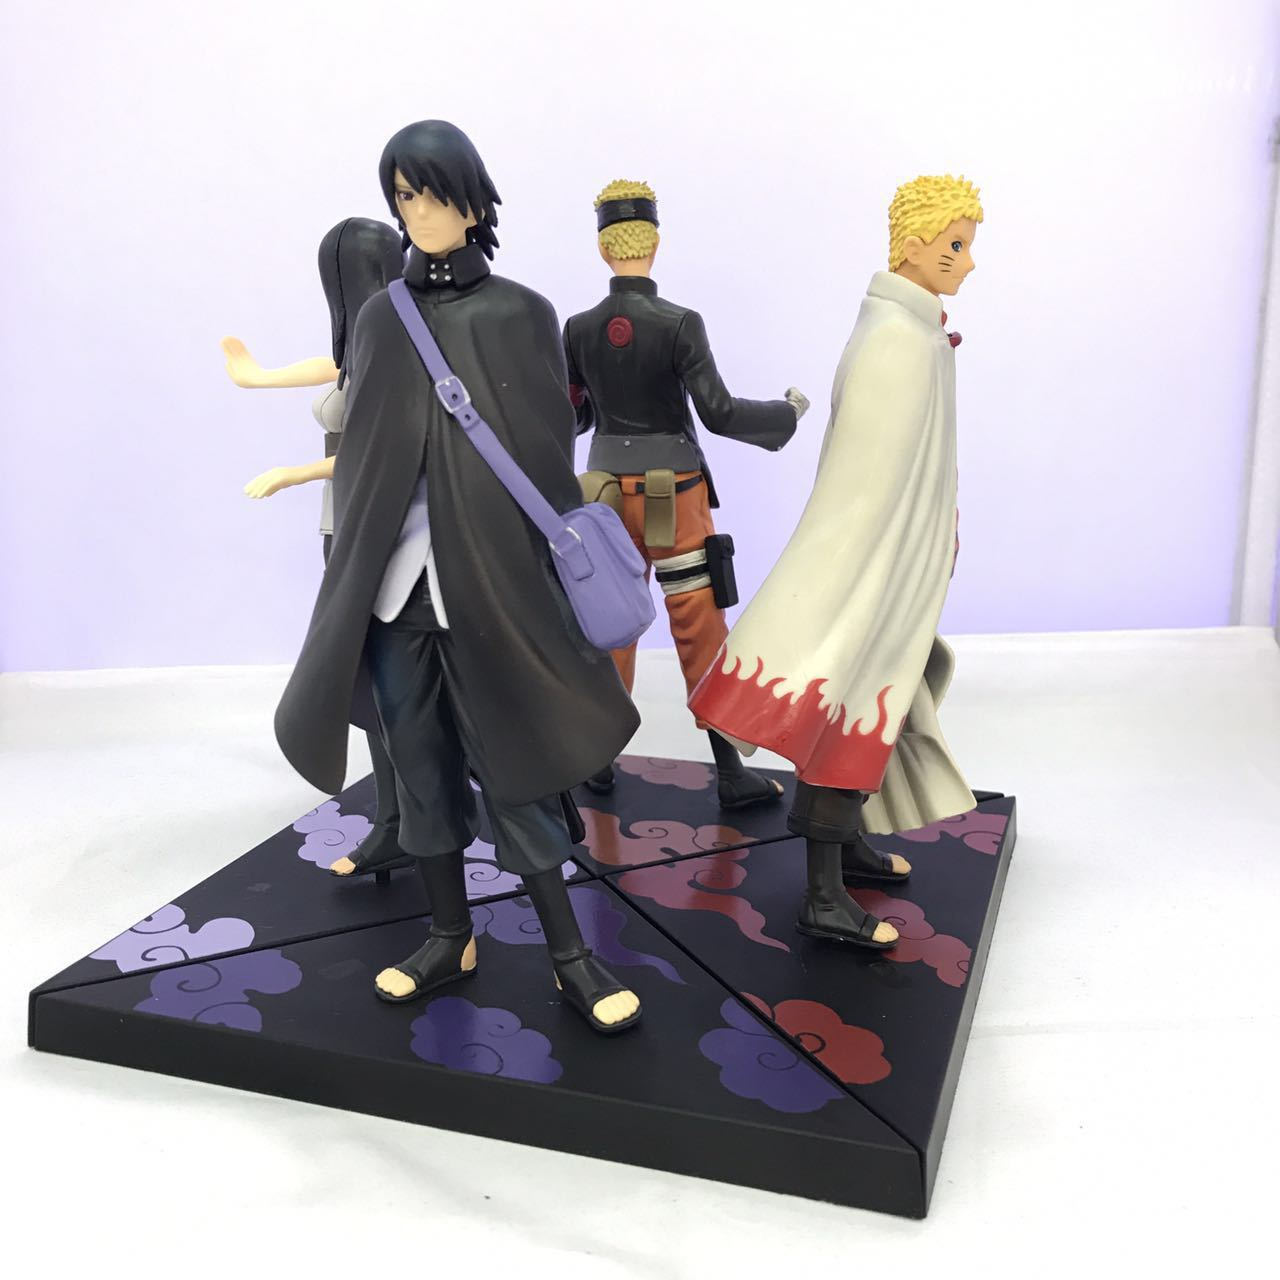 WVW 2pcs/Set Anime Heroes Naruto Itachi Sasuke Gaara Uzumaki Naruto Model PVC Toy Action Figure Decoration For Collection Gift anime naruto uzumaki naruto figure bond relation ver pvc action figure resin collection model toy doll gifts cosplay